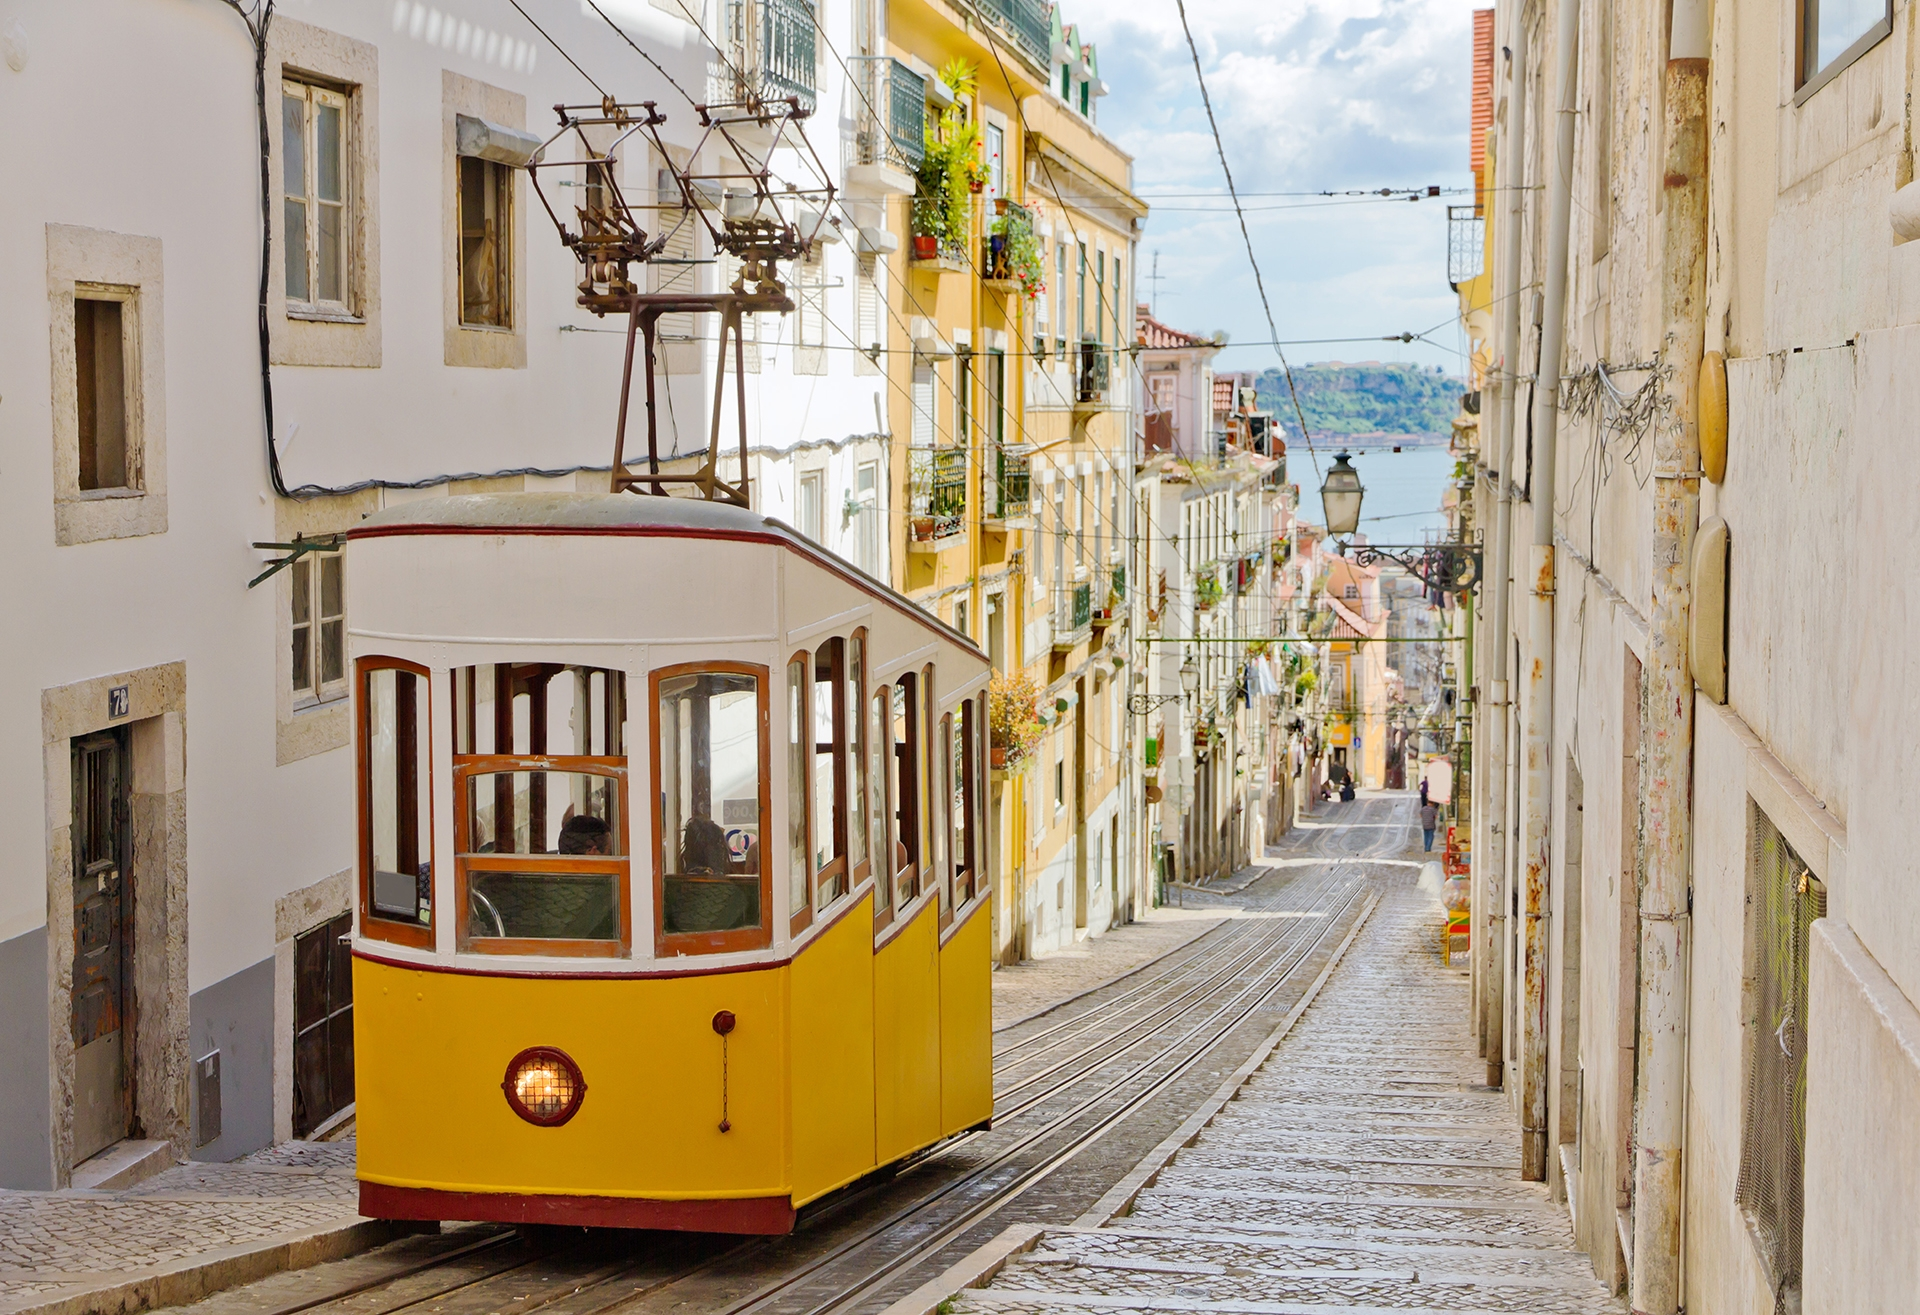 Lisbons-Gloria-funicular-located-on-the-west-side-of-the-Avenida-da-Liberdade-connects-downtown-with-Bairro